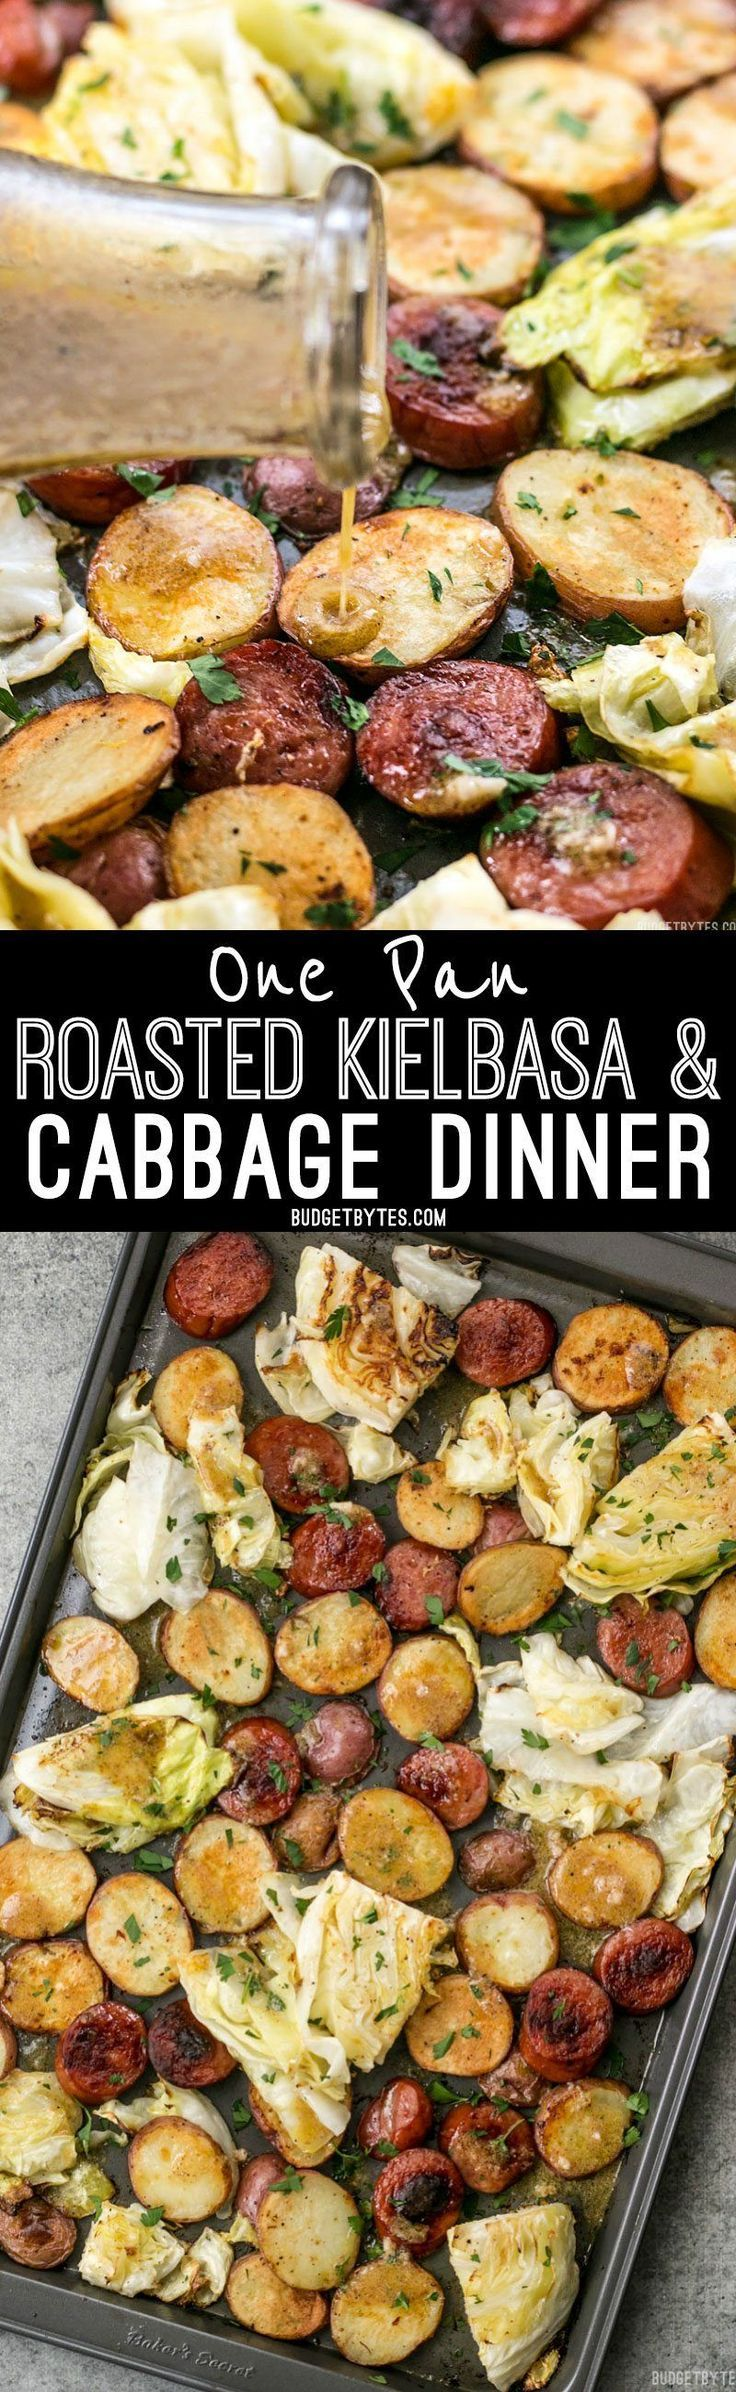 This One Pan Roasted Kielbasa and Cabbage Dinner comes together in minutes and is full of flavor and comfort. An easy weeknight dinner!